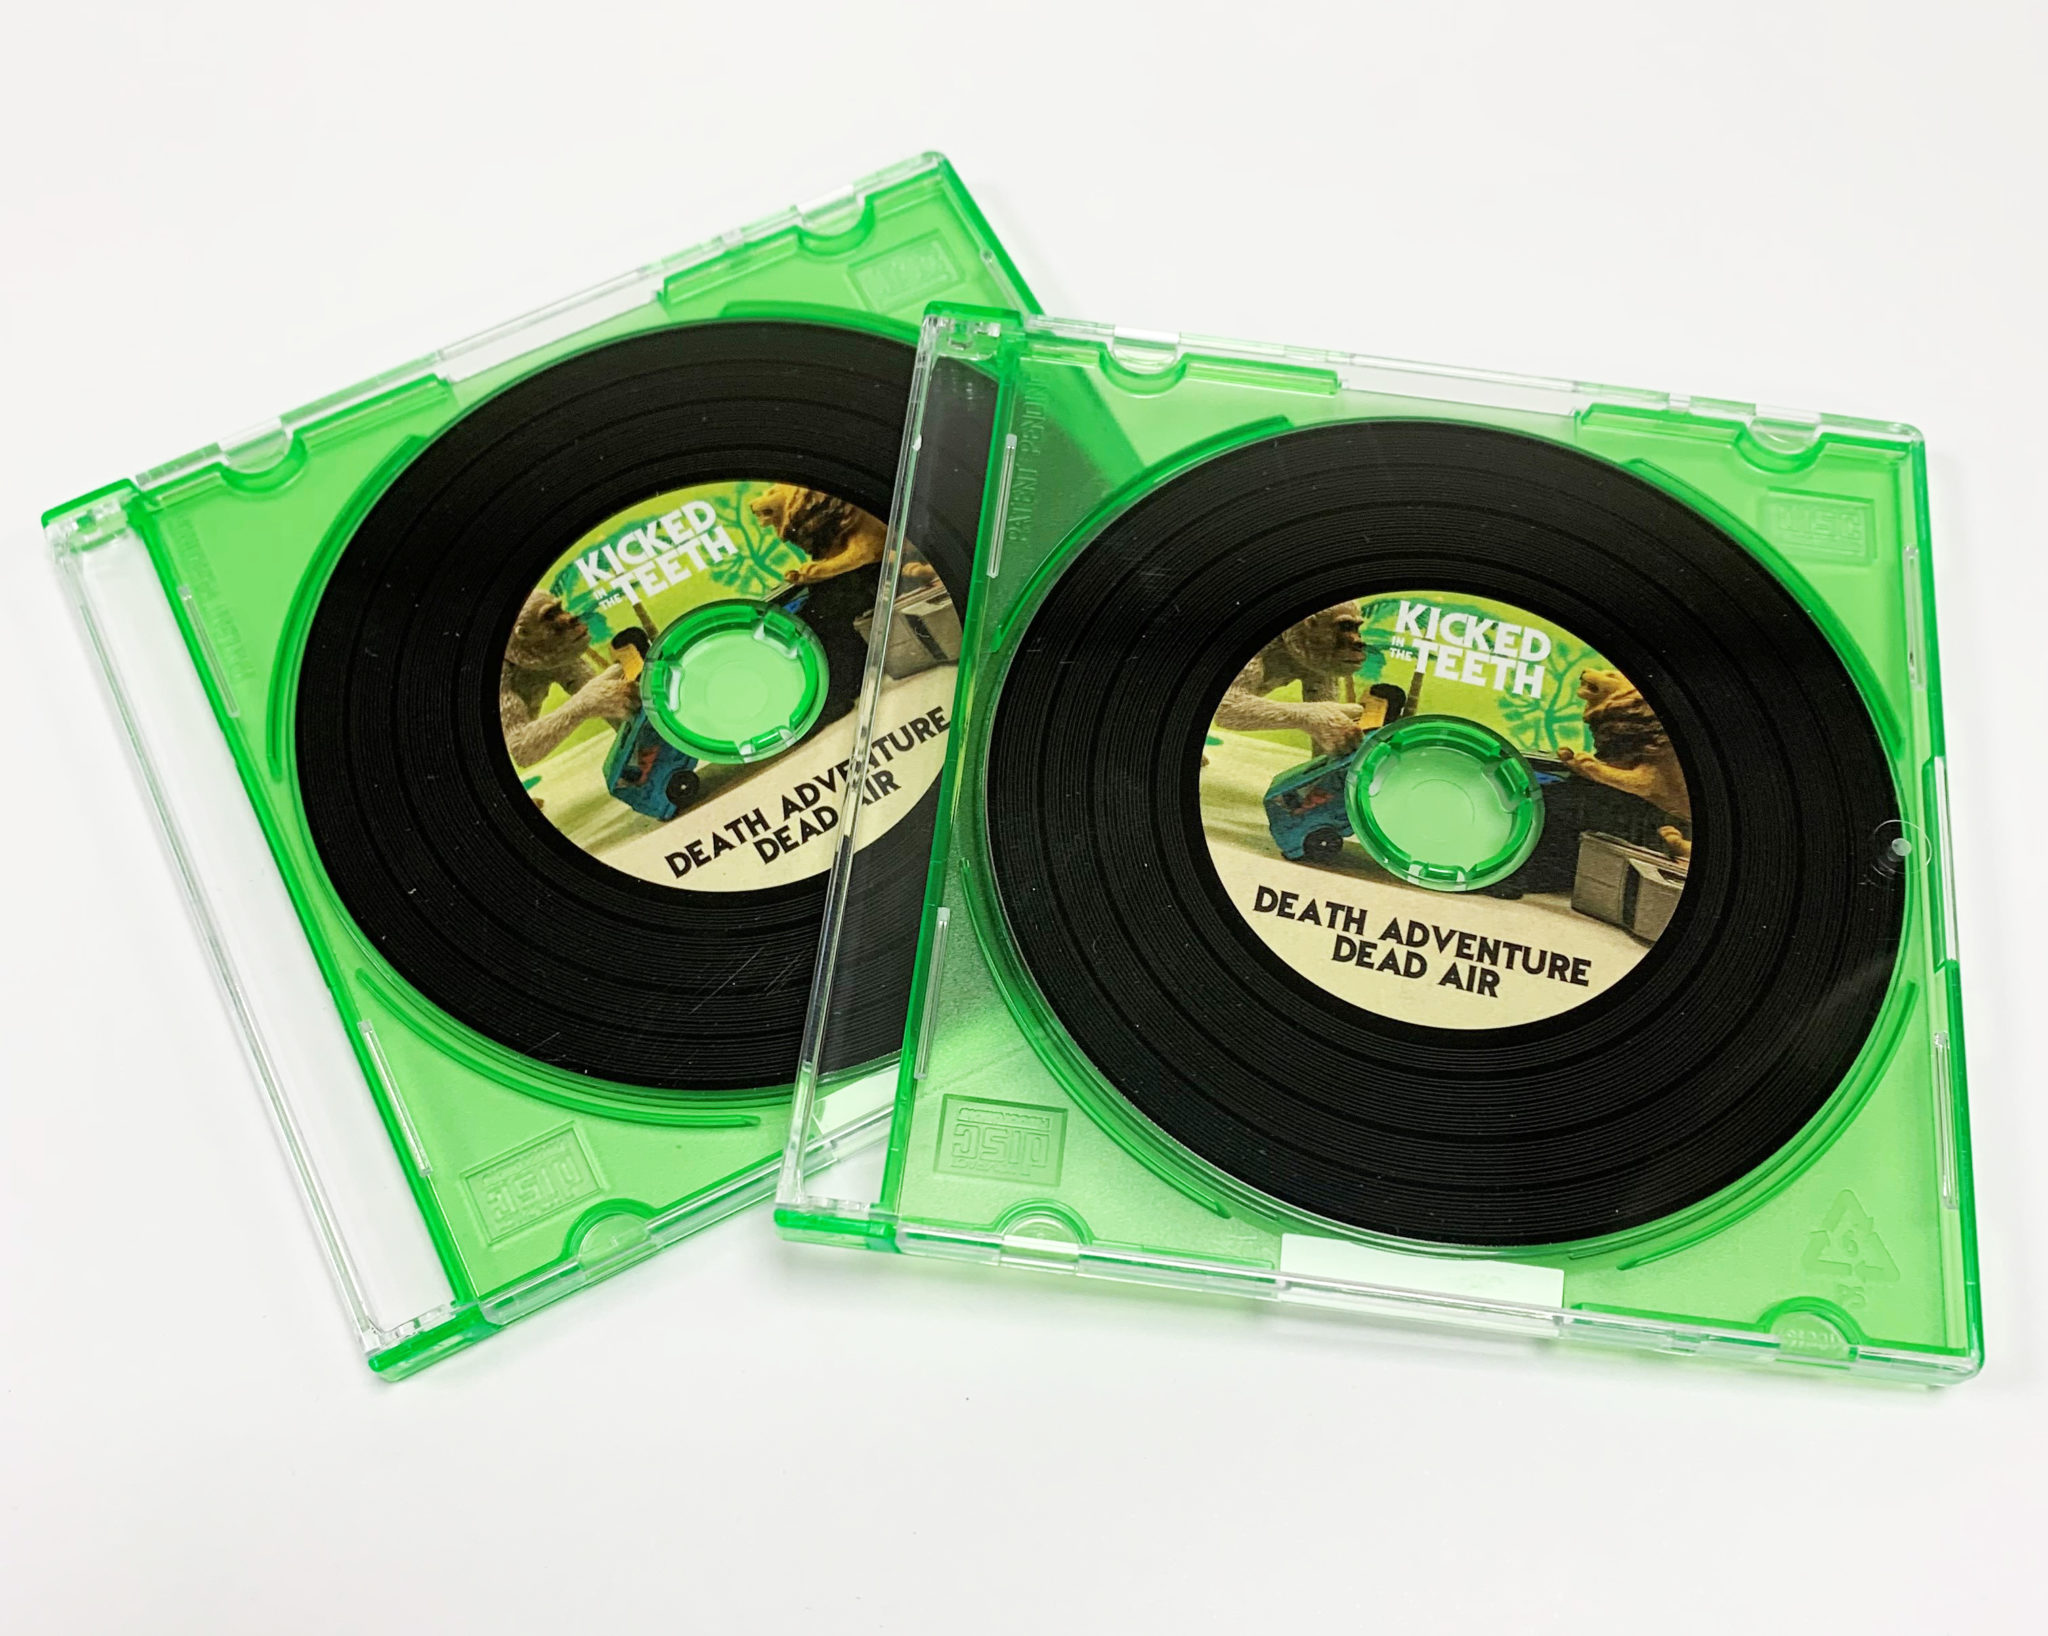 Mini 8cm vinyl-effect CDs with full colour sticker printing and packed in green frosted jewel cases